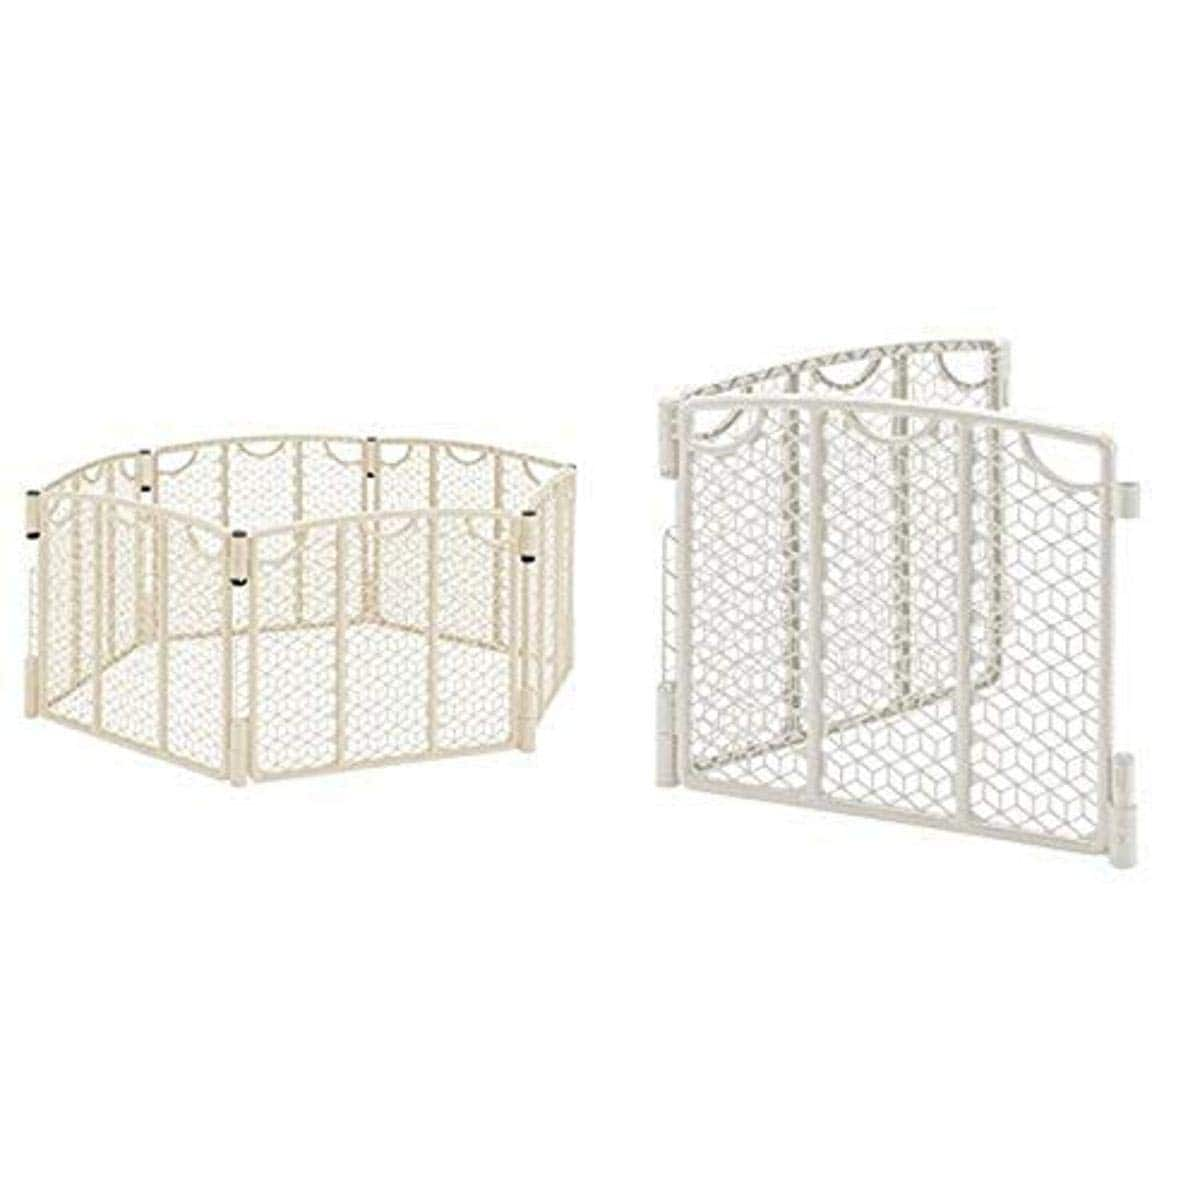 Evenflo Versatile Play Space, Cream with Versatile Play Space 2-Panel Extension, Cream $60.98